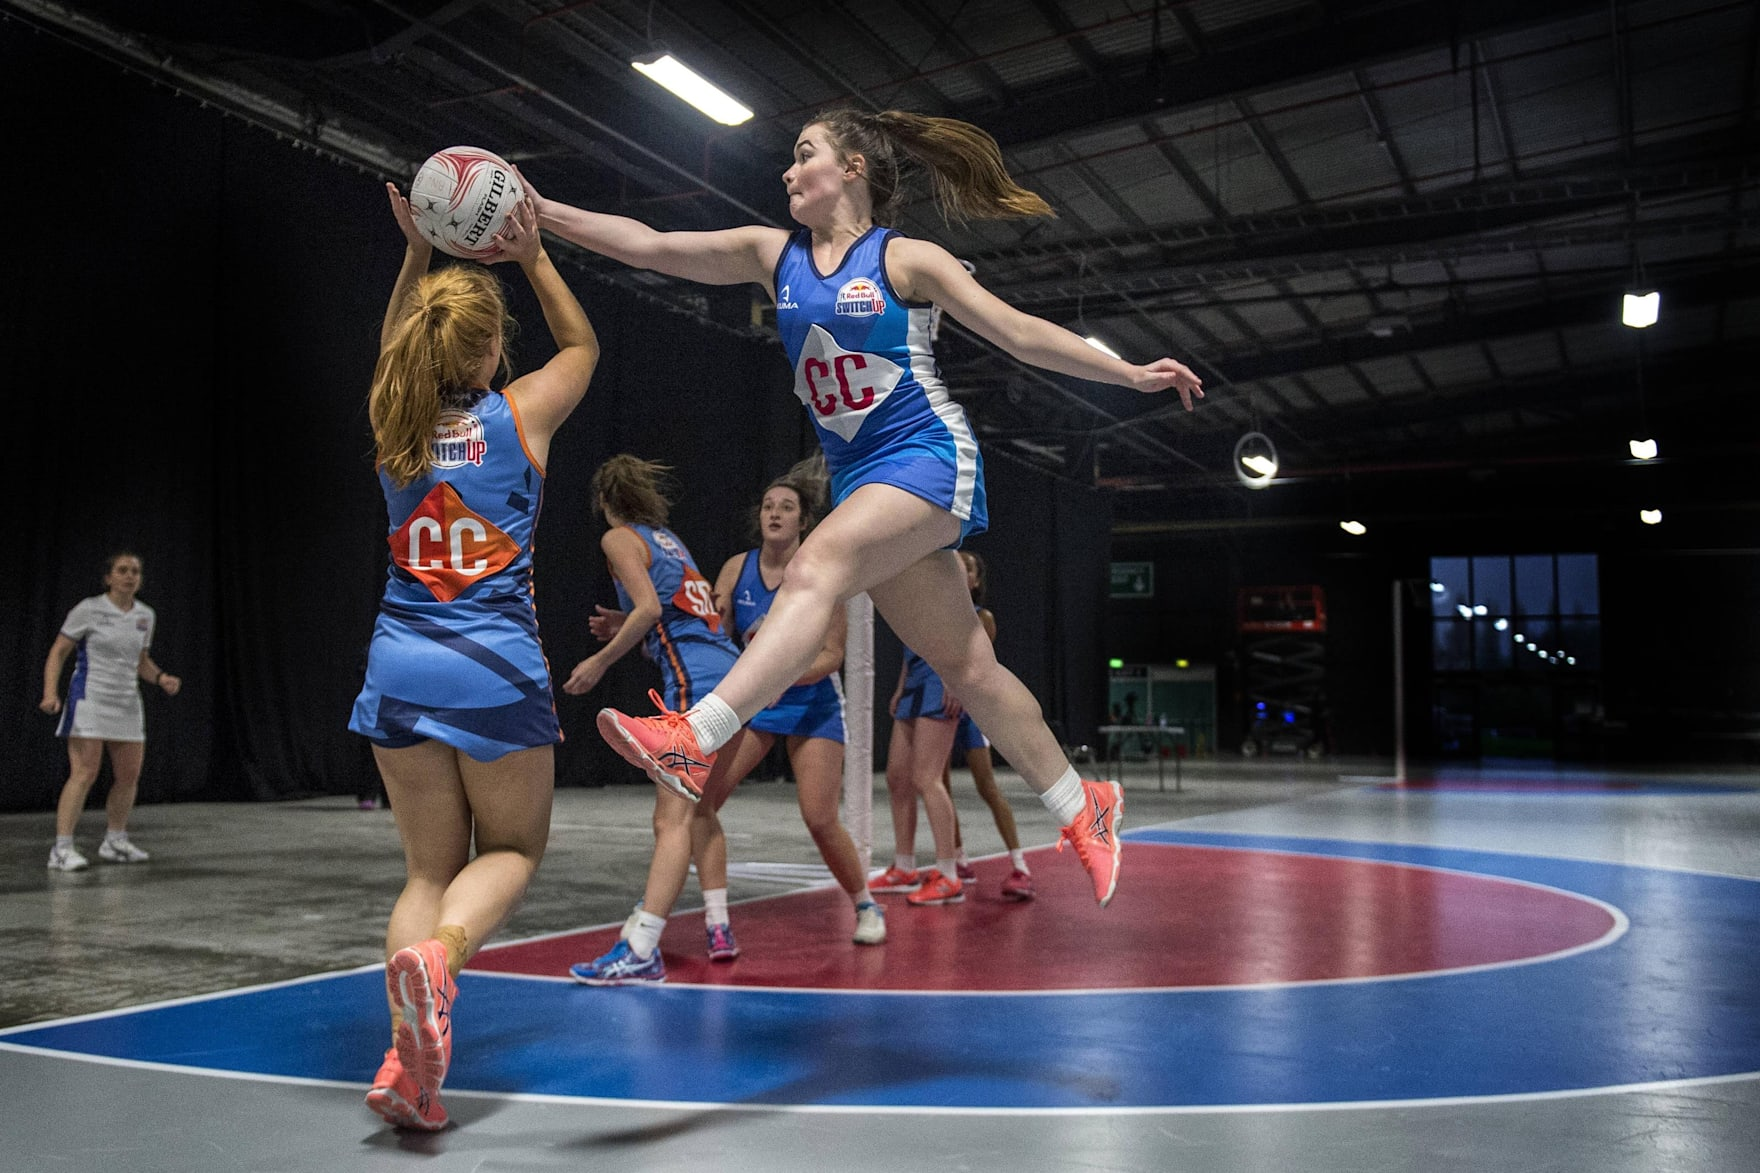 The rules and regulations of playing in a Netball match